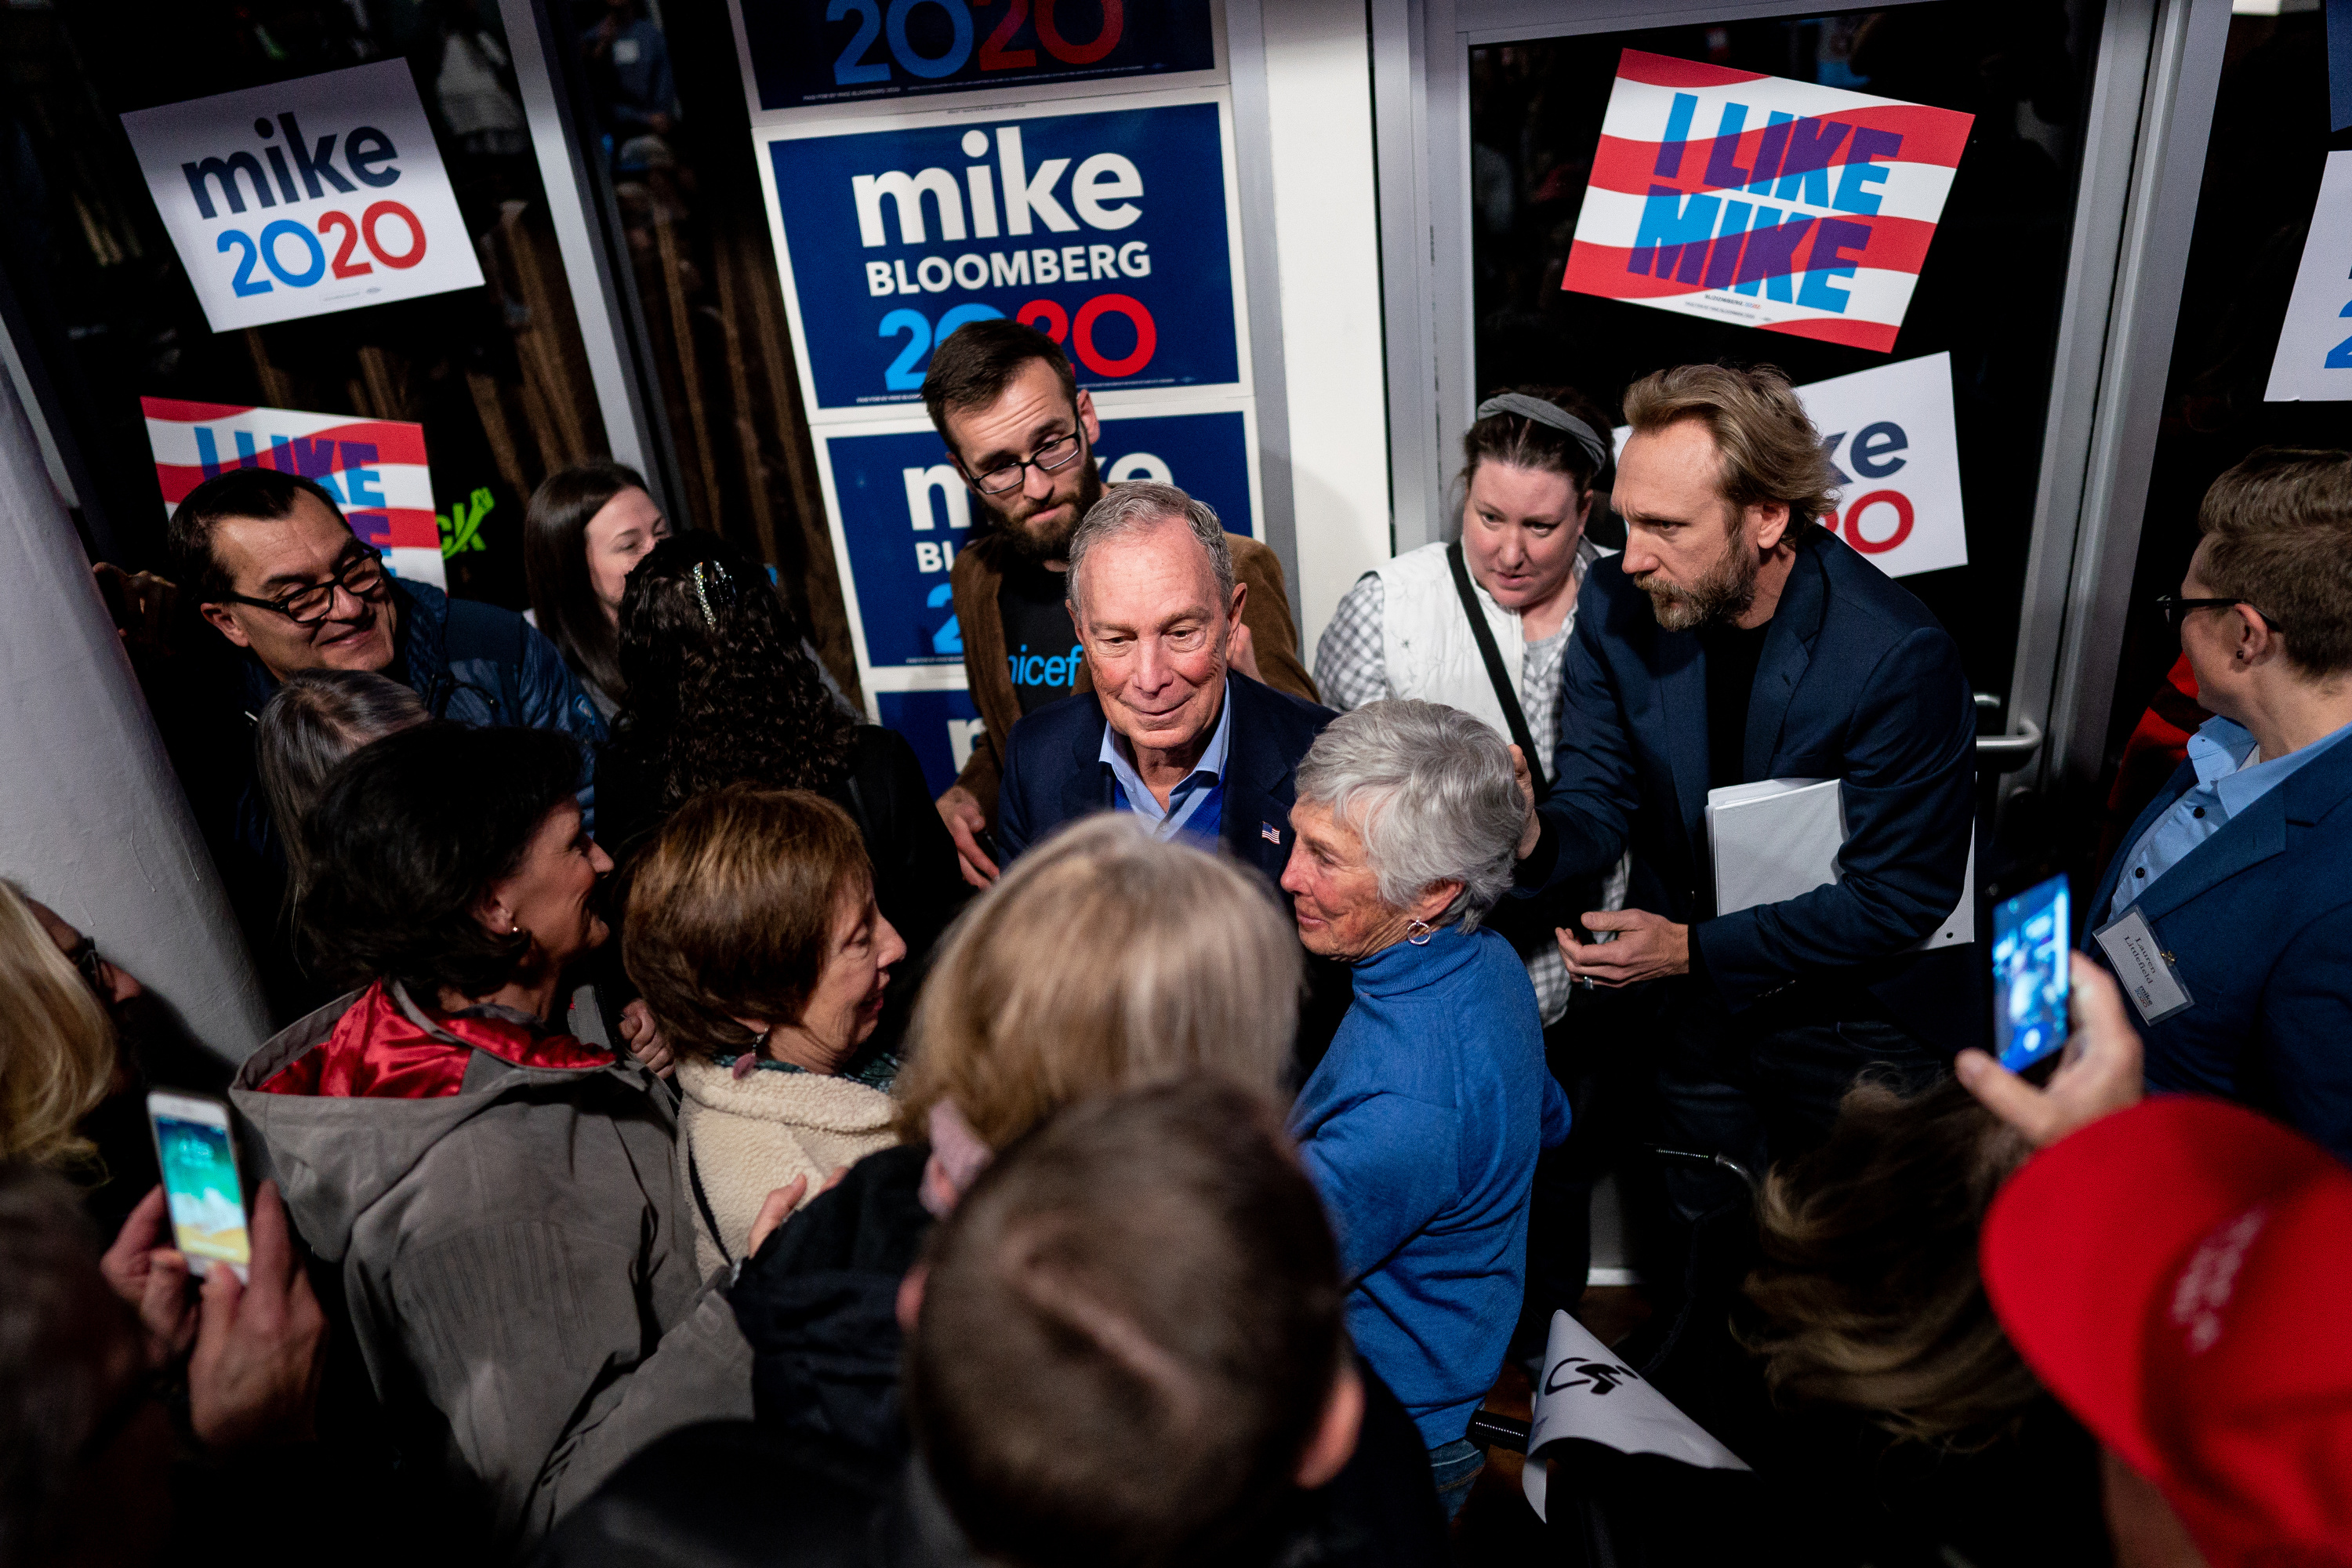 Democratic presidential candidate Michael Bloomberg greets supporters after speaking at a campaign event at Impact Hub in Salt Lake City on Saturday, Jan. 18, 2020.